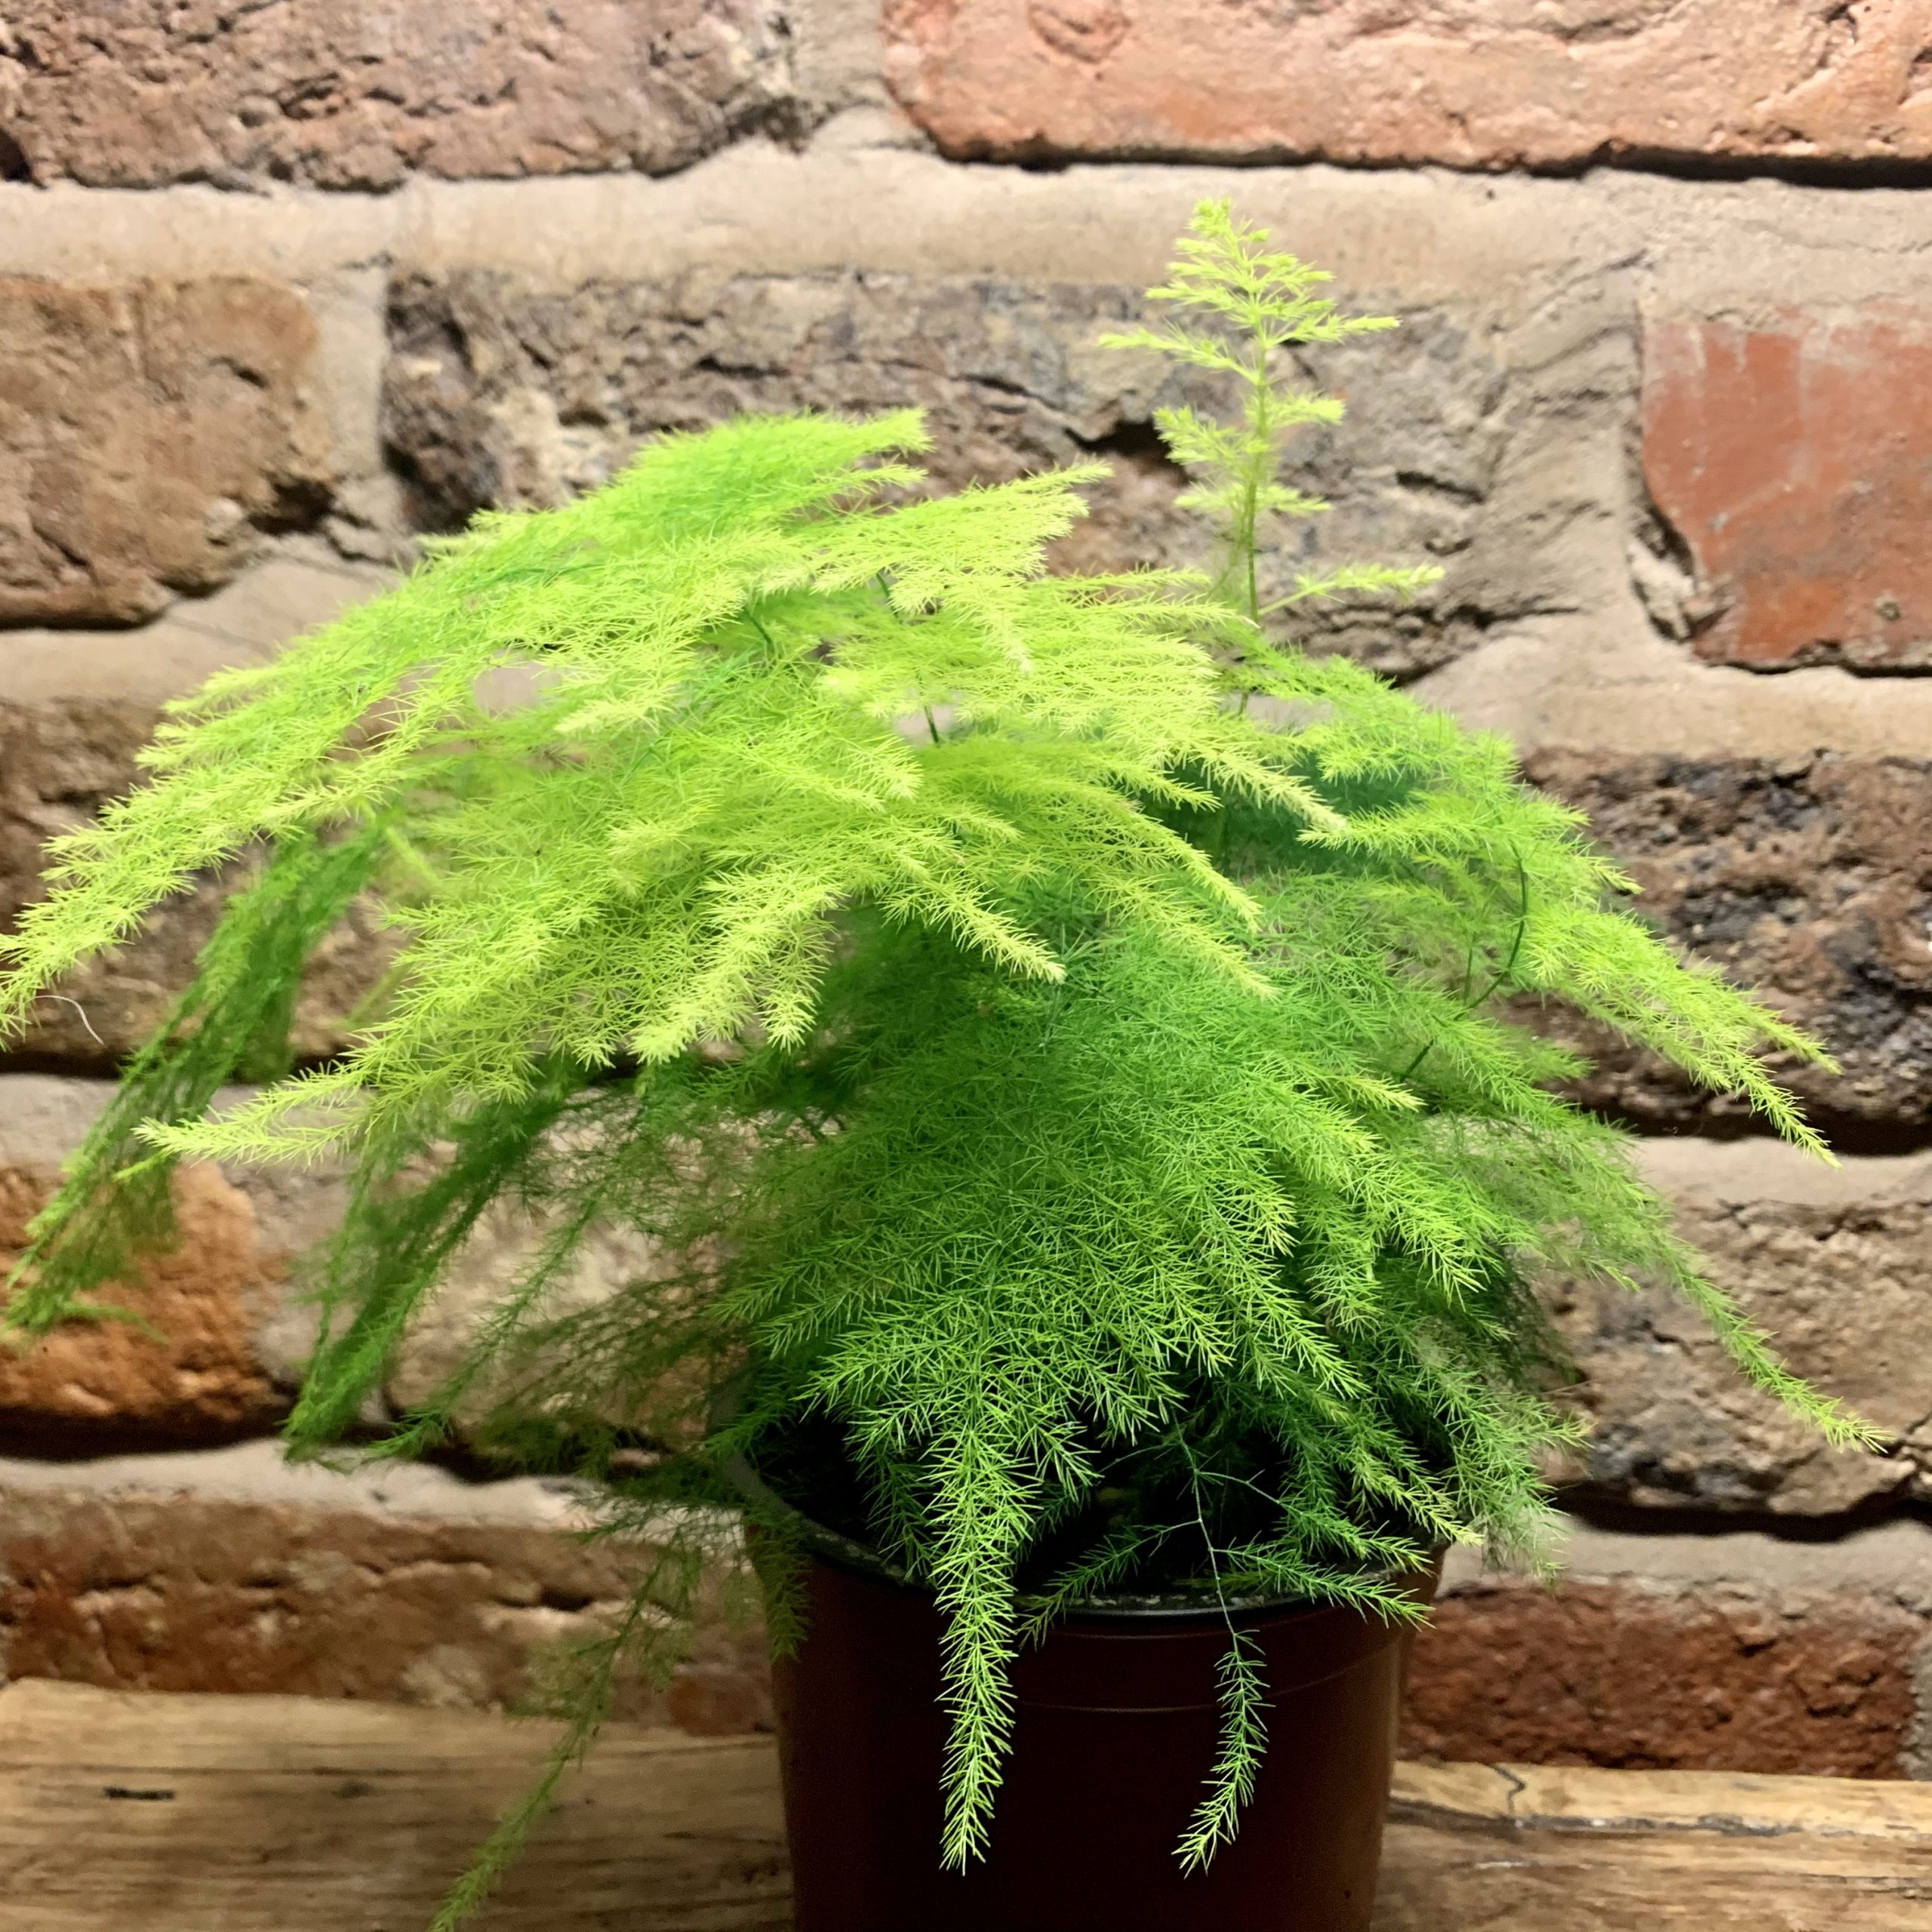 'OPHELIA' The Asparagus Fern